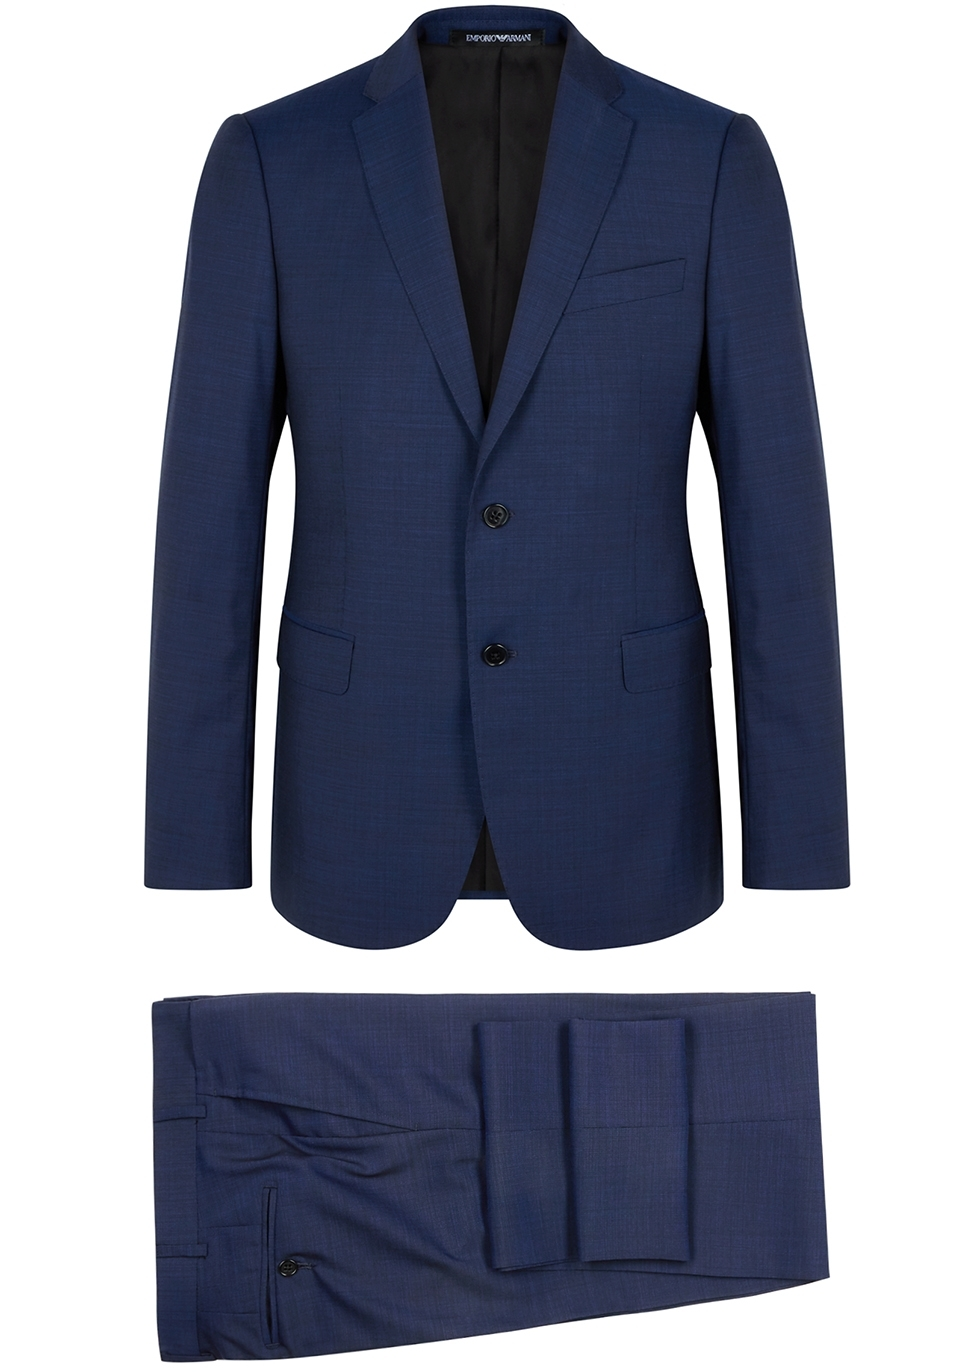 dbc6f97662e4 Men's Designer Tailoring - Luxury Tailored Outfits - Harvey Nichols